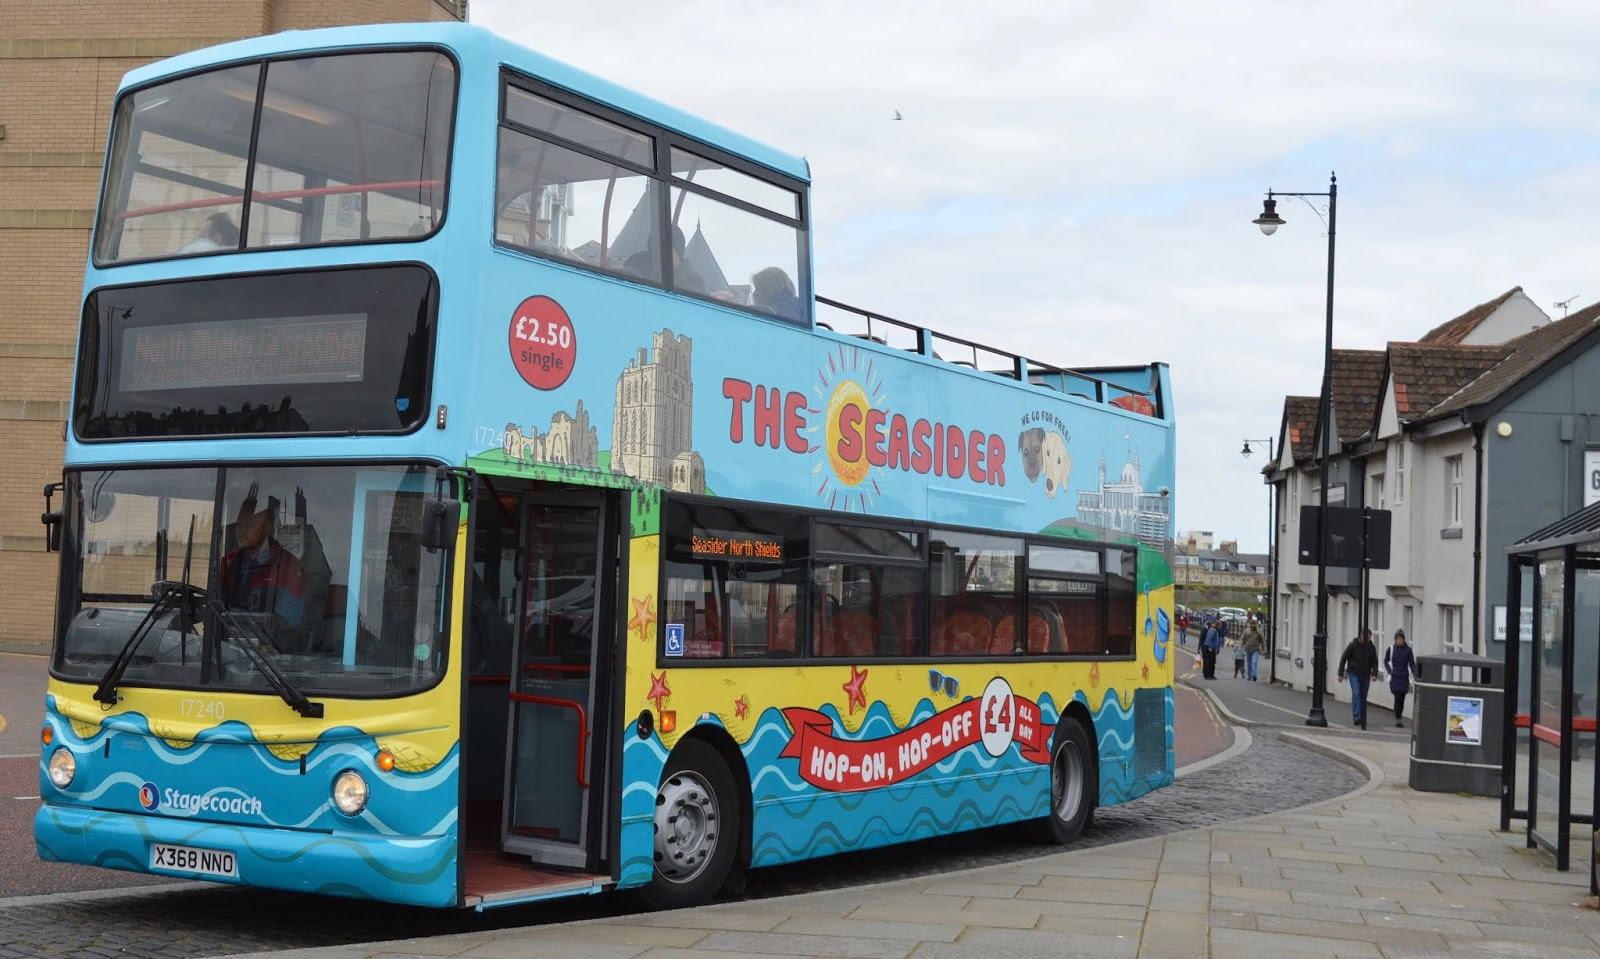 The Seasider Open Top Bus Tour Whitley Bay | Tickets, Prices, Timetables & Where To Visit